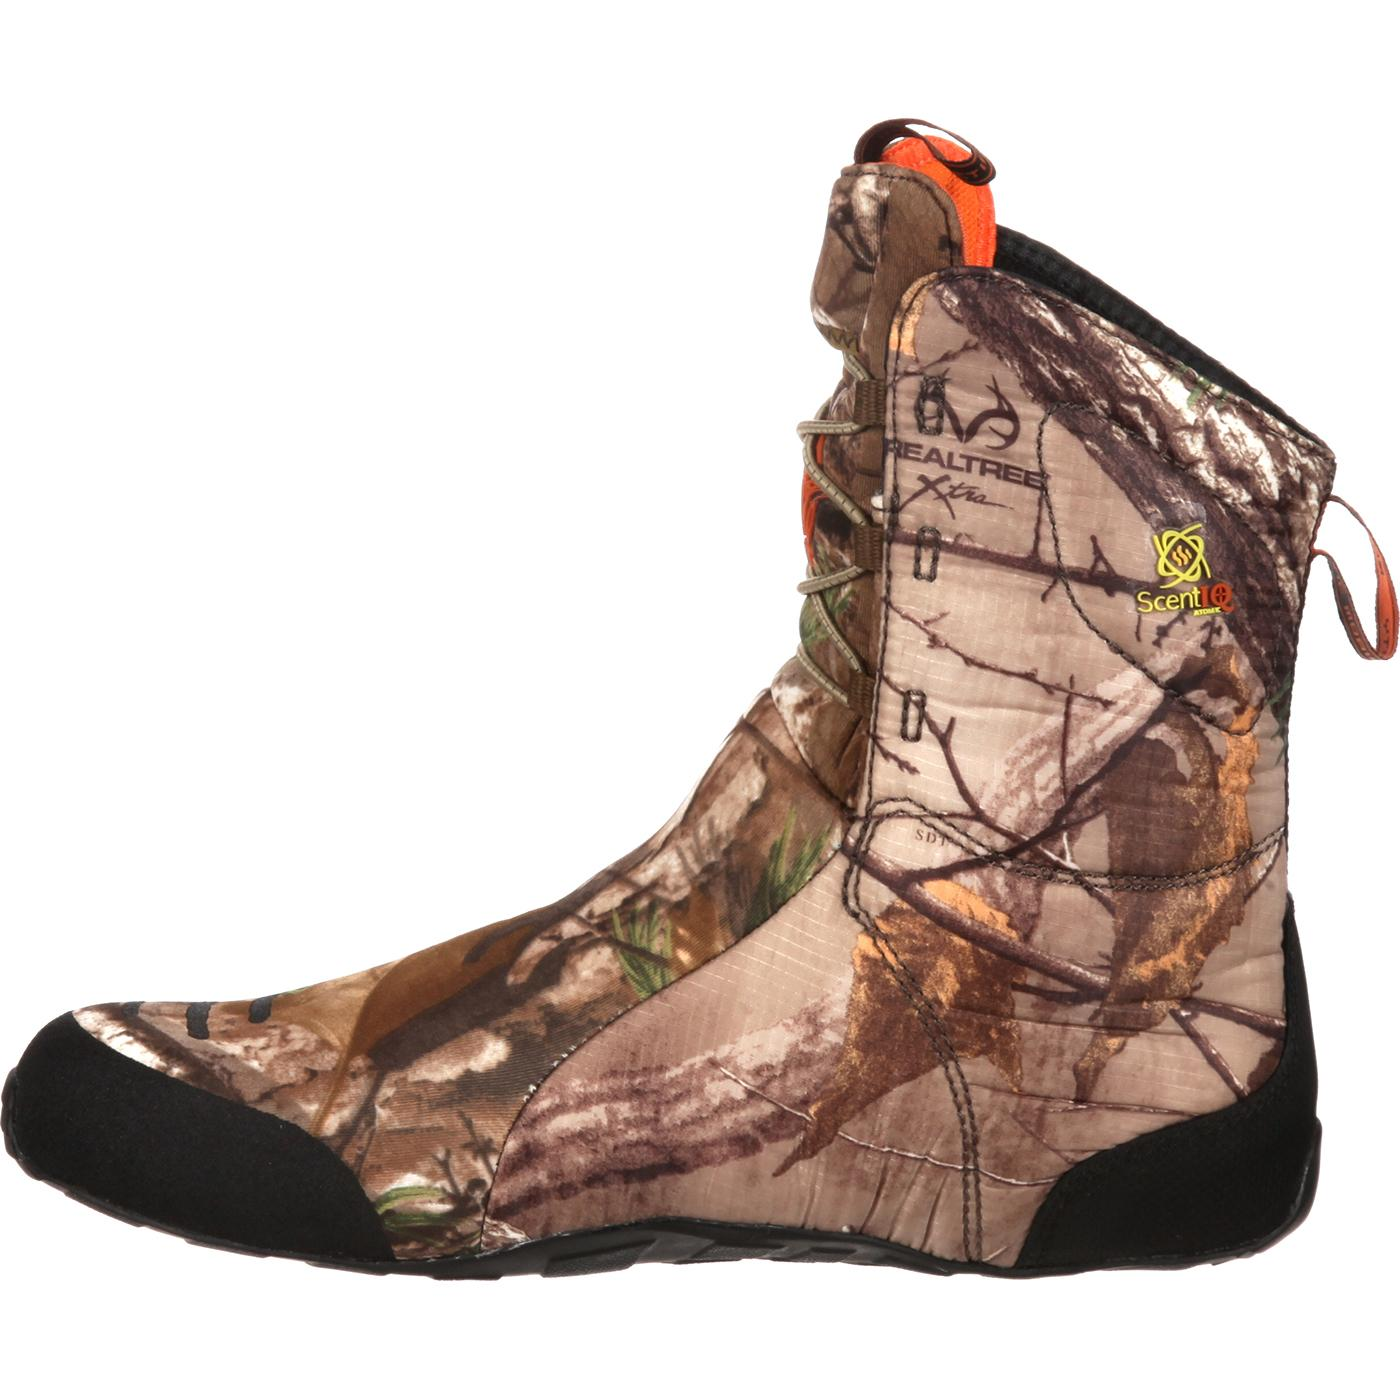 Waterproof Insulated Boot Rocky Athletic Mobility Stalker